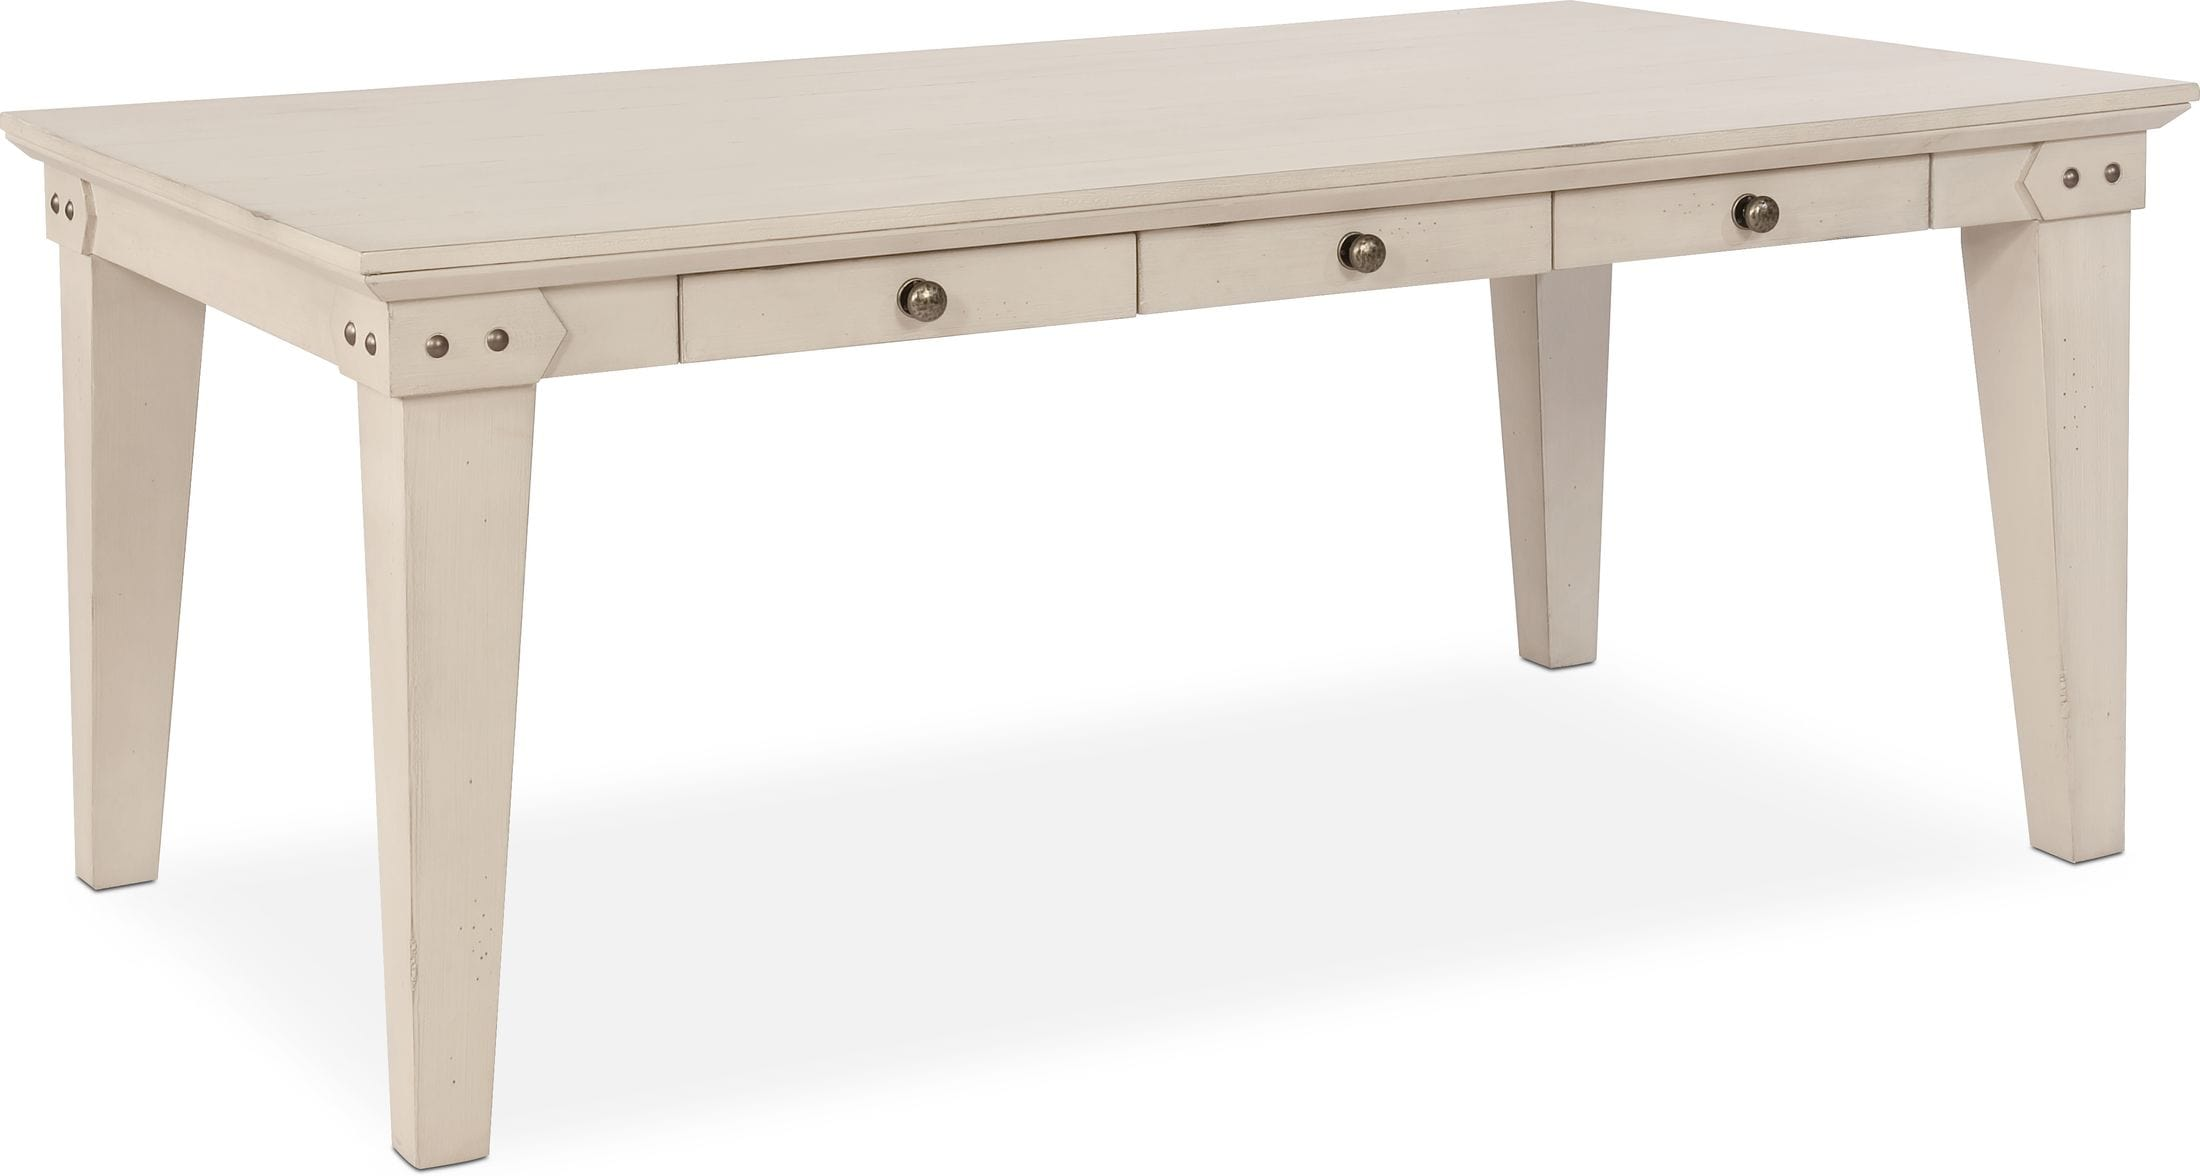 Dining Room Furniture - New Haven Dining Table